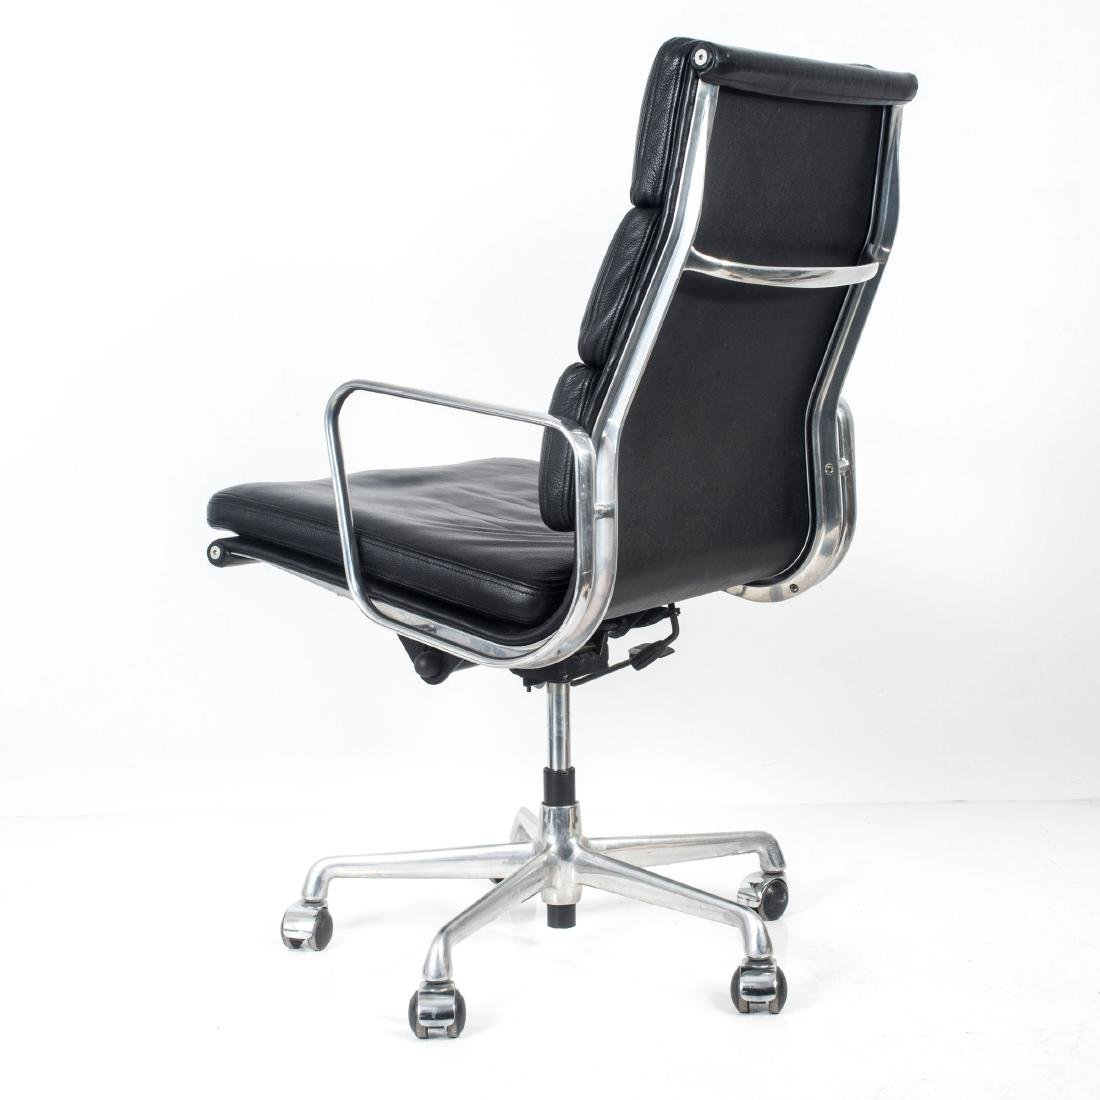 'Soft Pad Group Swivel chair with side arms', 1969 - 5